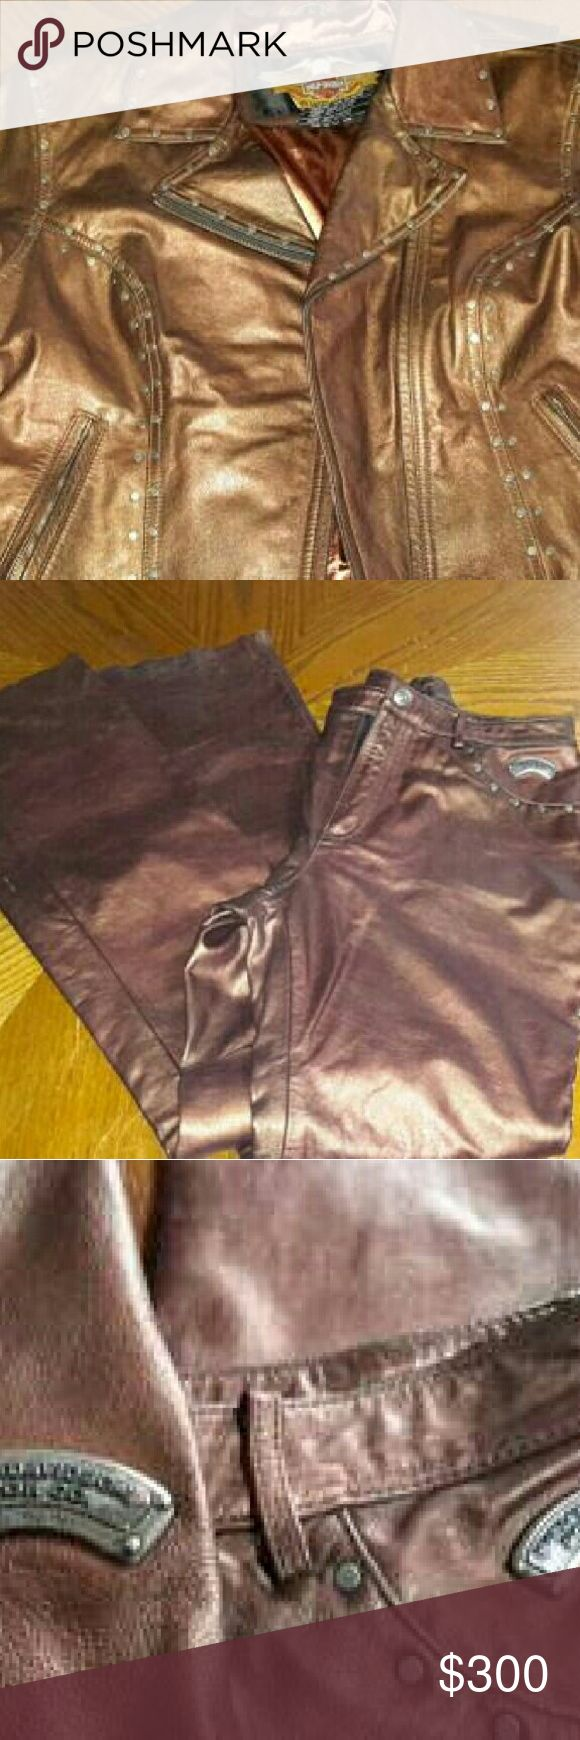 """HD Coat/Pant Suit RARE BROWN METALLIC Gorgeous Harley Davidson Jacket/Pant Set - BROWN LEATHER METALLIC w/ metal studs, & metal HARLEY BADGE on Jacket arm & above the pant pocket.  Jacket is women's Large, this is a very heavy & EXPENSIVE! Zippered arm cuffs, collar snaps down & the back of the jacket bottom is curved.  Pants are 33"""" long & are like chaps at the end, PANTS ARE PROBABLY ABOUT A SIZE 6. The set is very rare was customed ordered by a friend who owned a Harley store.  Set was…"""